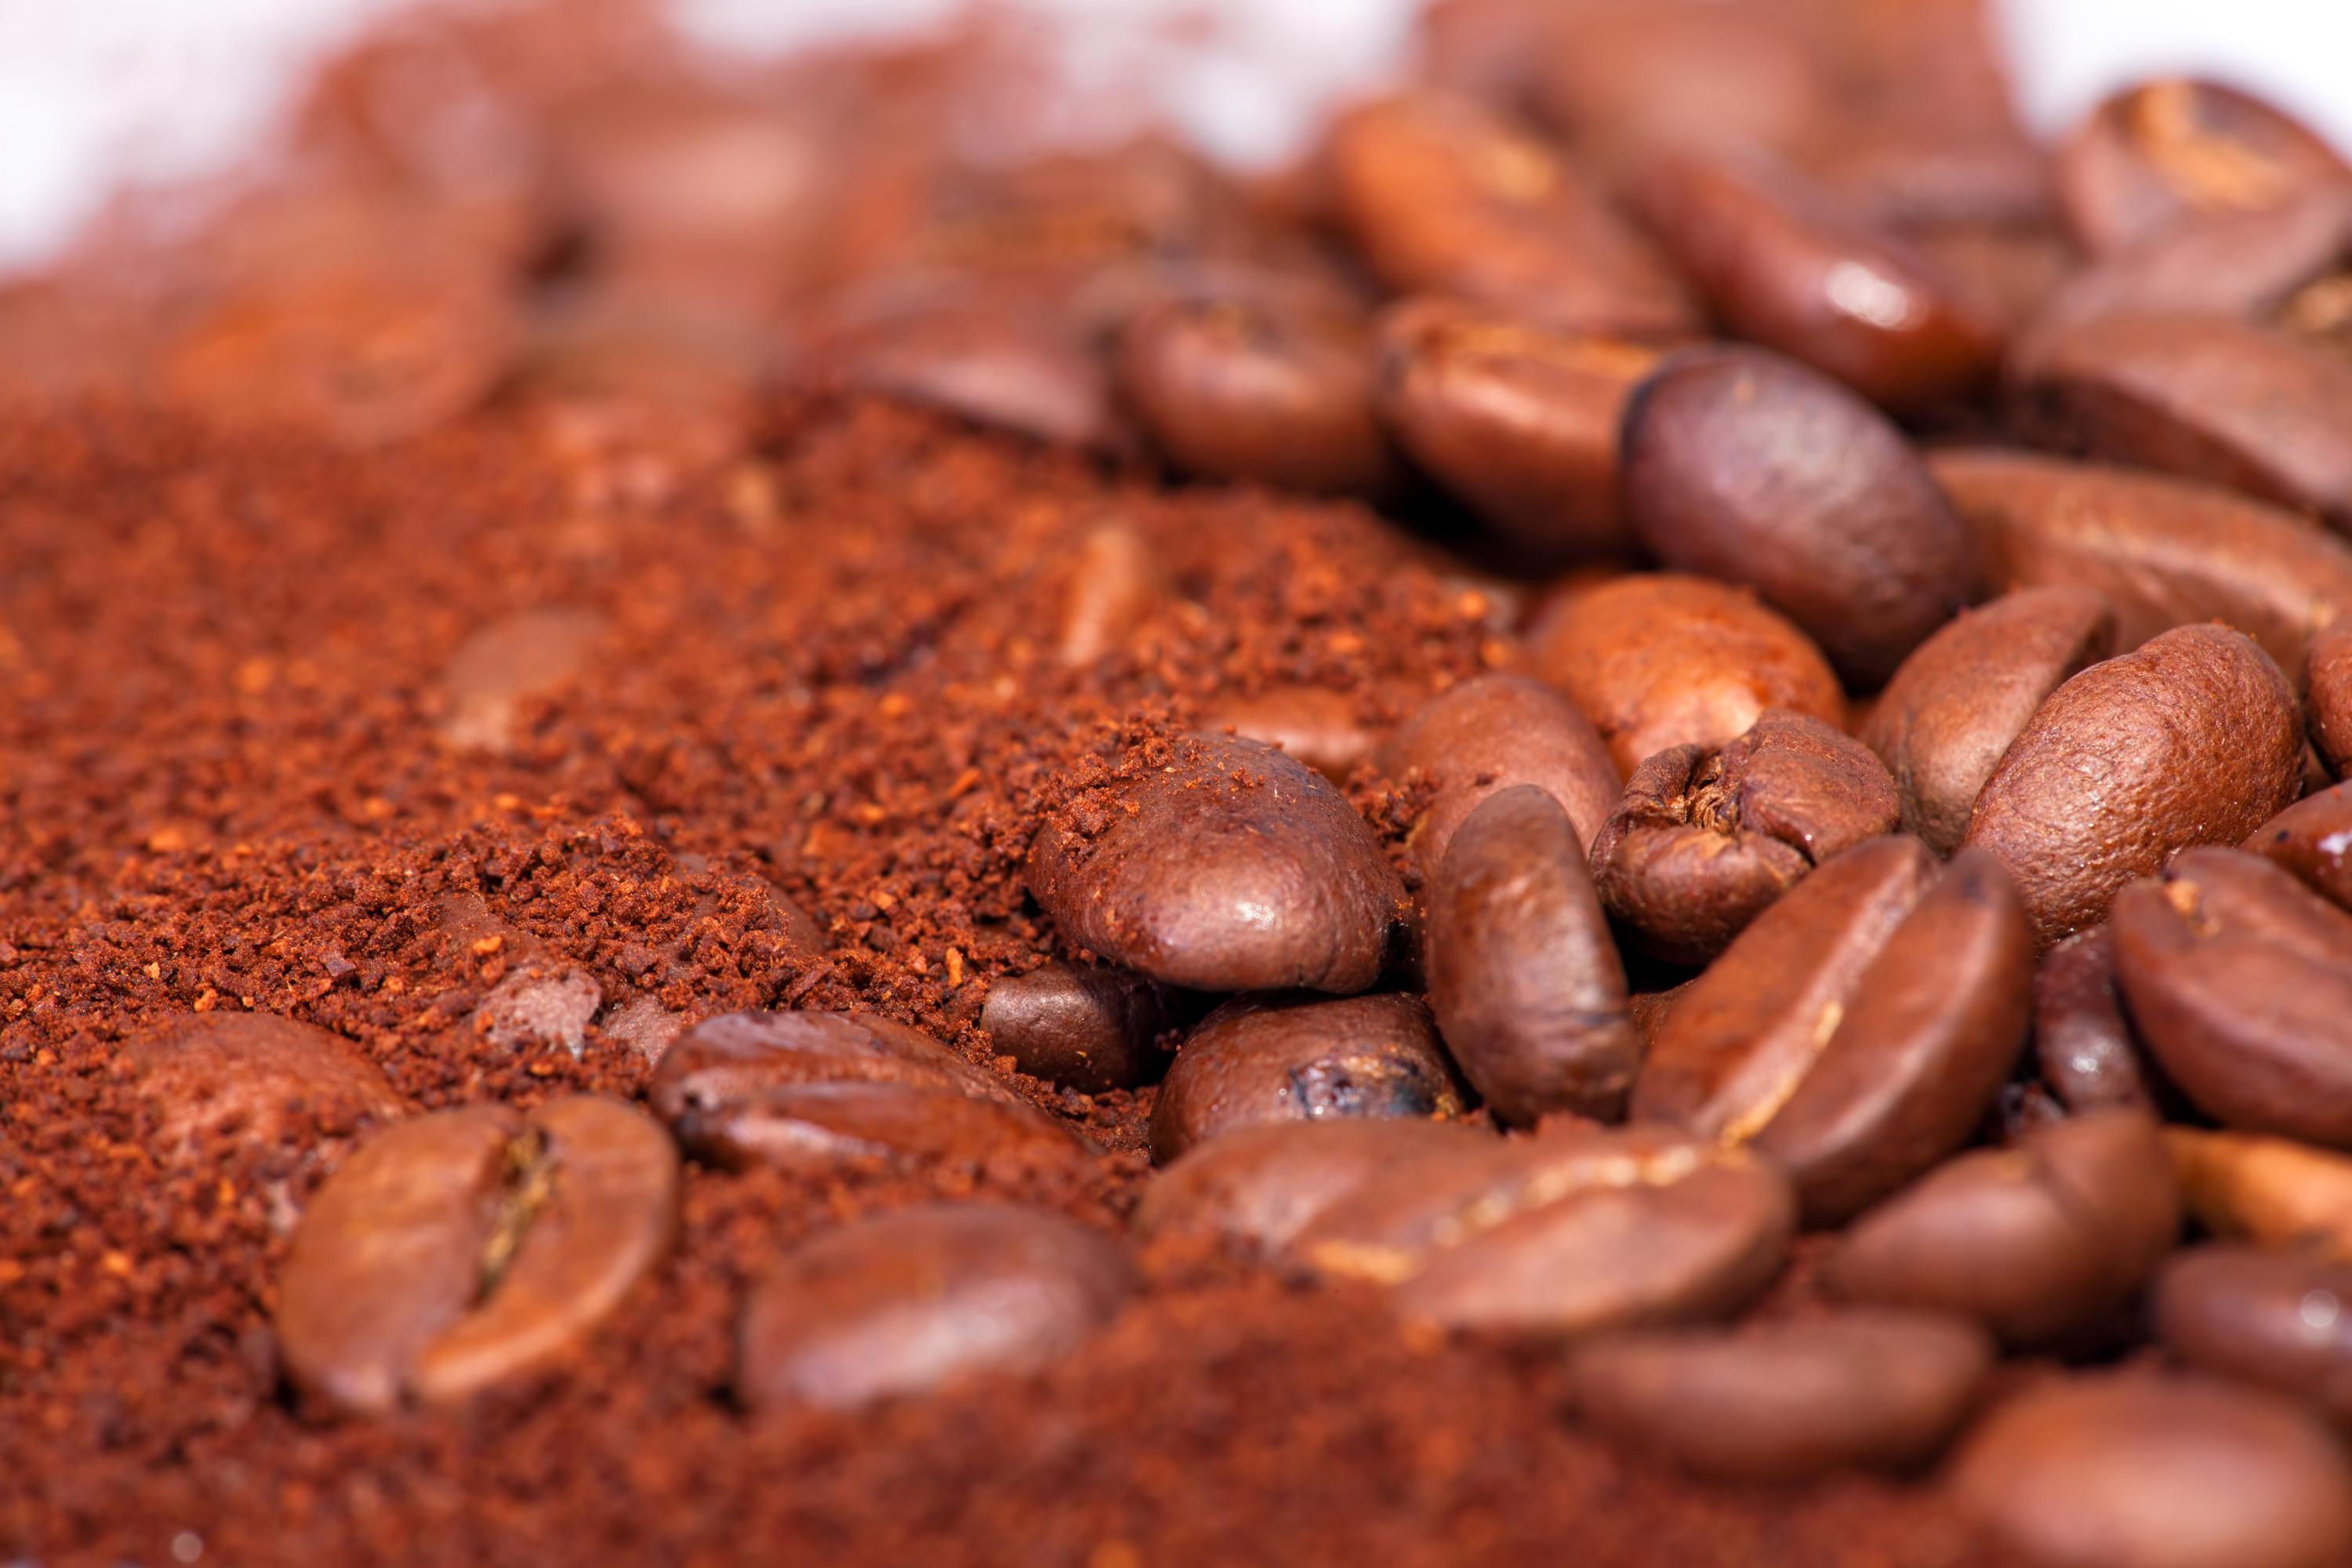 Coffee beans, Arabica, Espresso, Roasted, Natural, HQ Photo